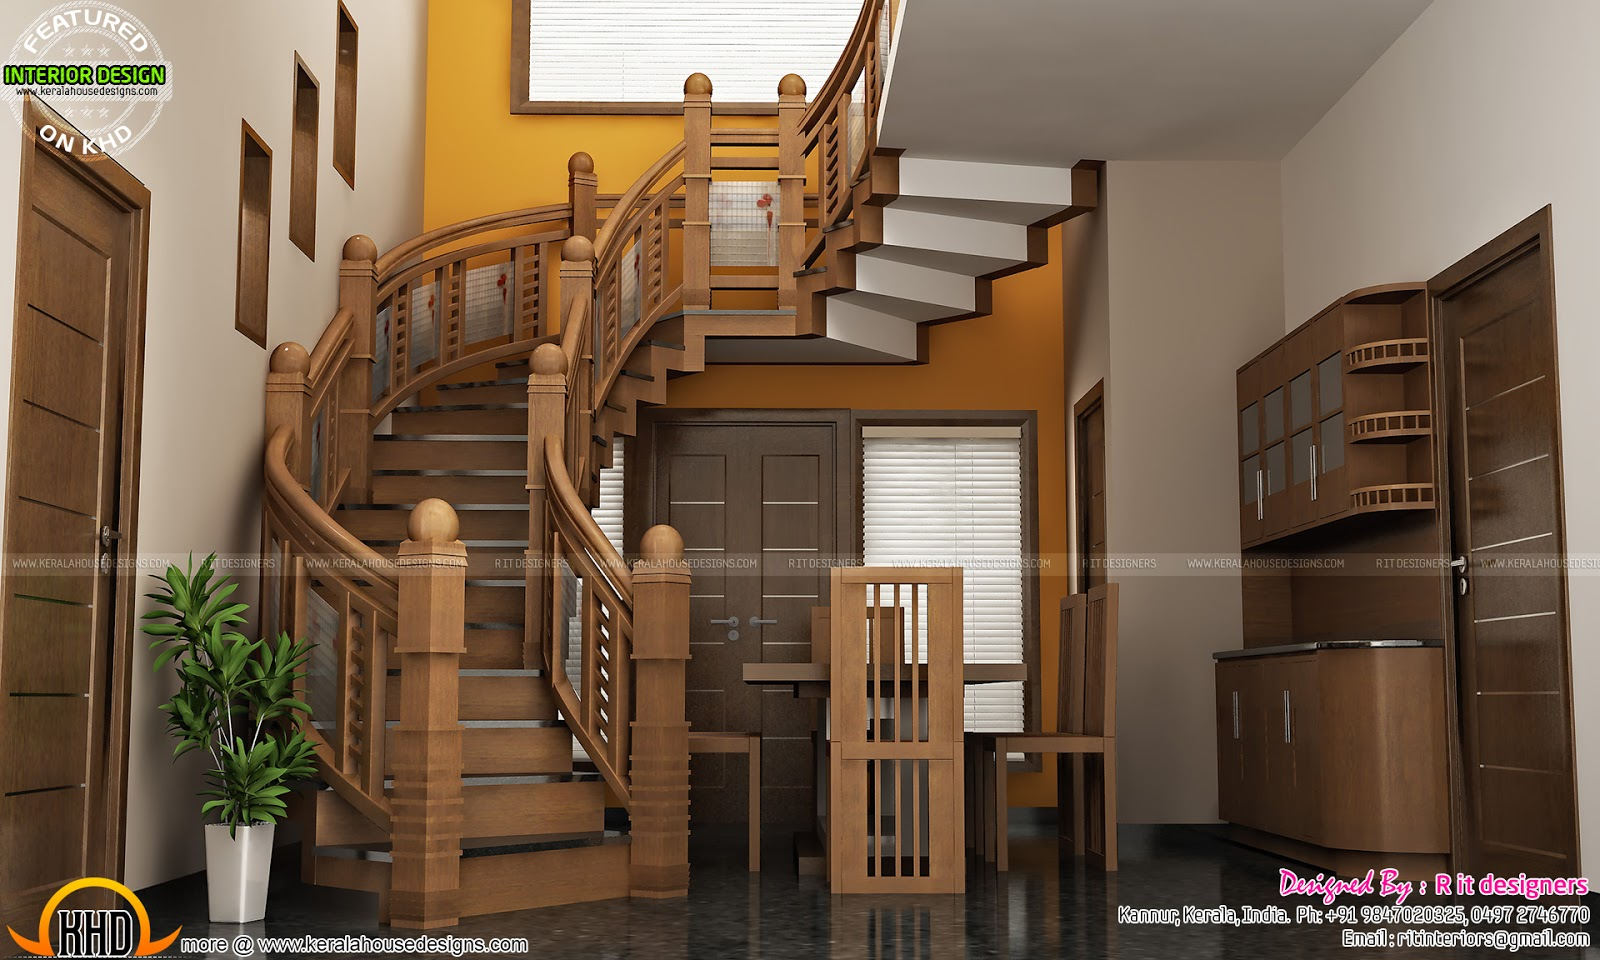 Under stair design wooden stair kitchen and living kerala home design and floor plans - House of design ...